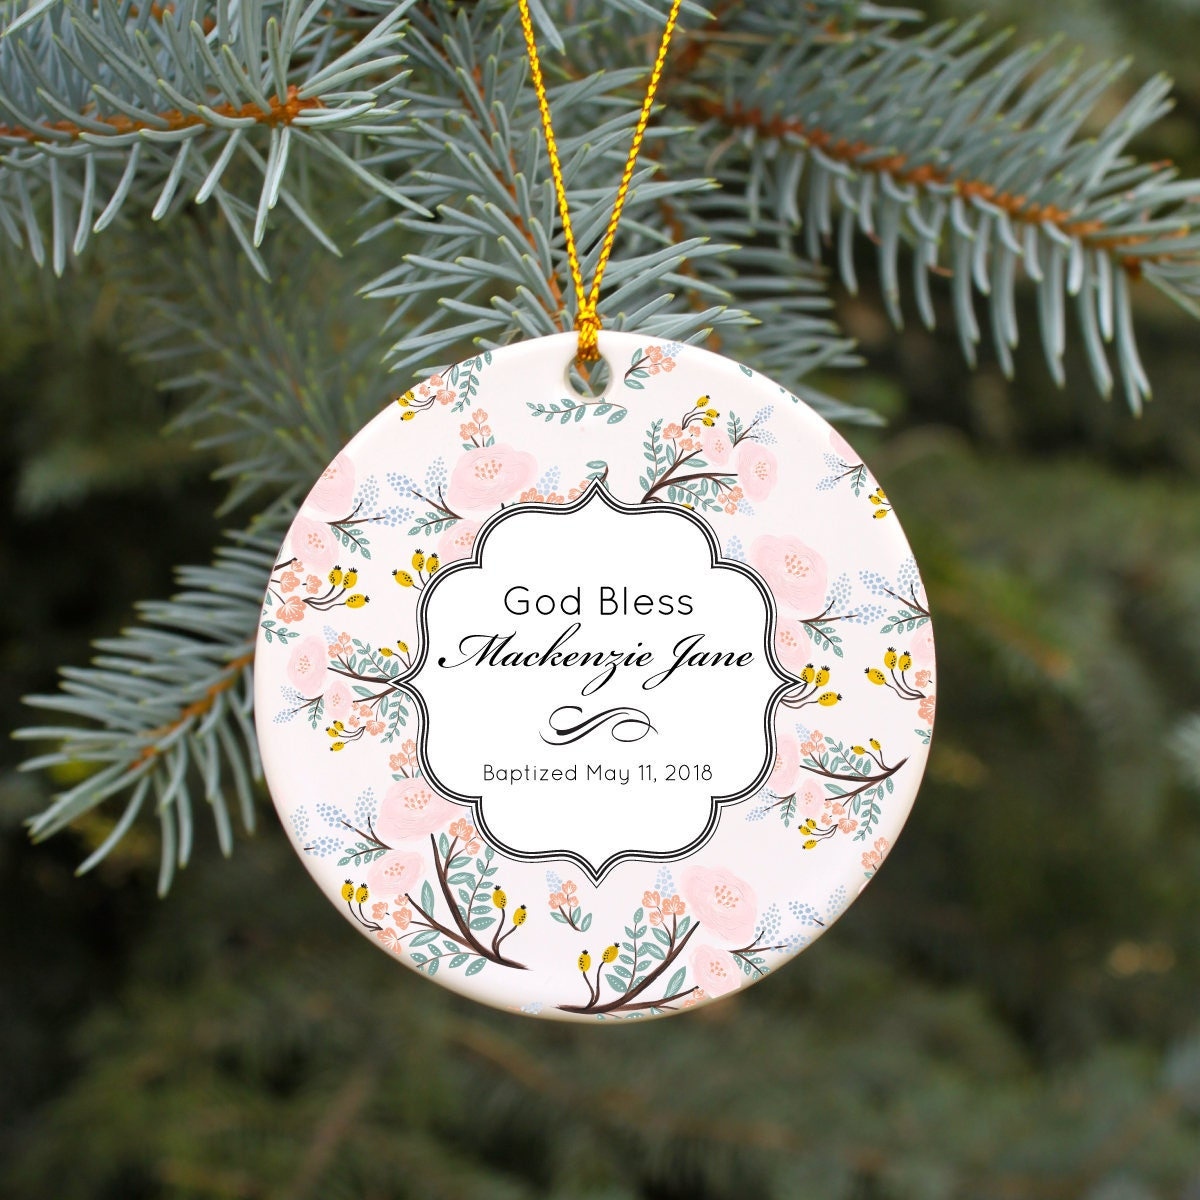 Baptism Christening Baby Metal Ornament: Baptism Ornament Christening Ornament God Bless Baby Girl